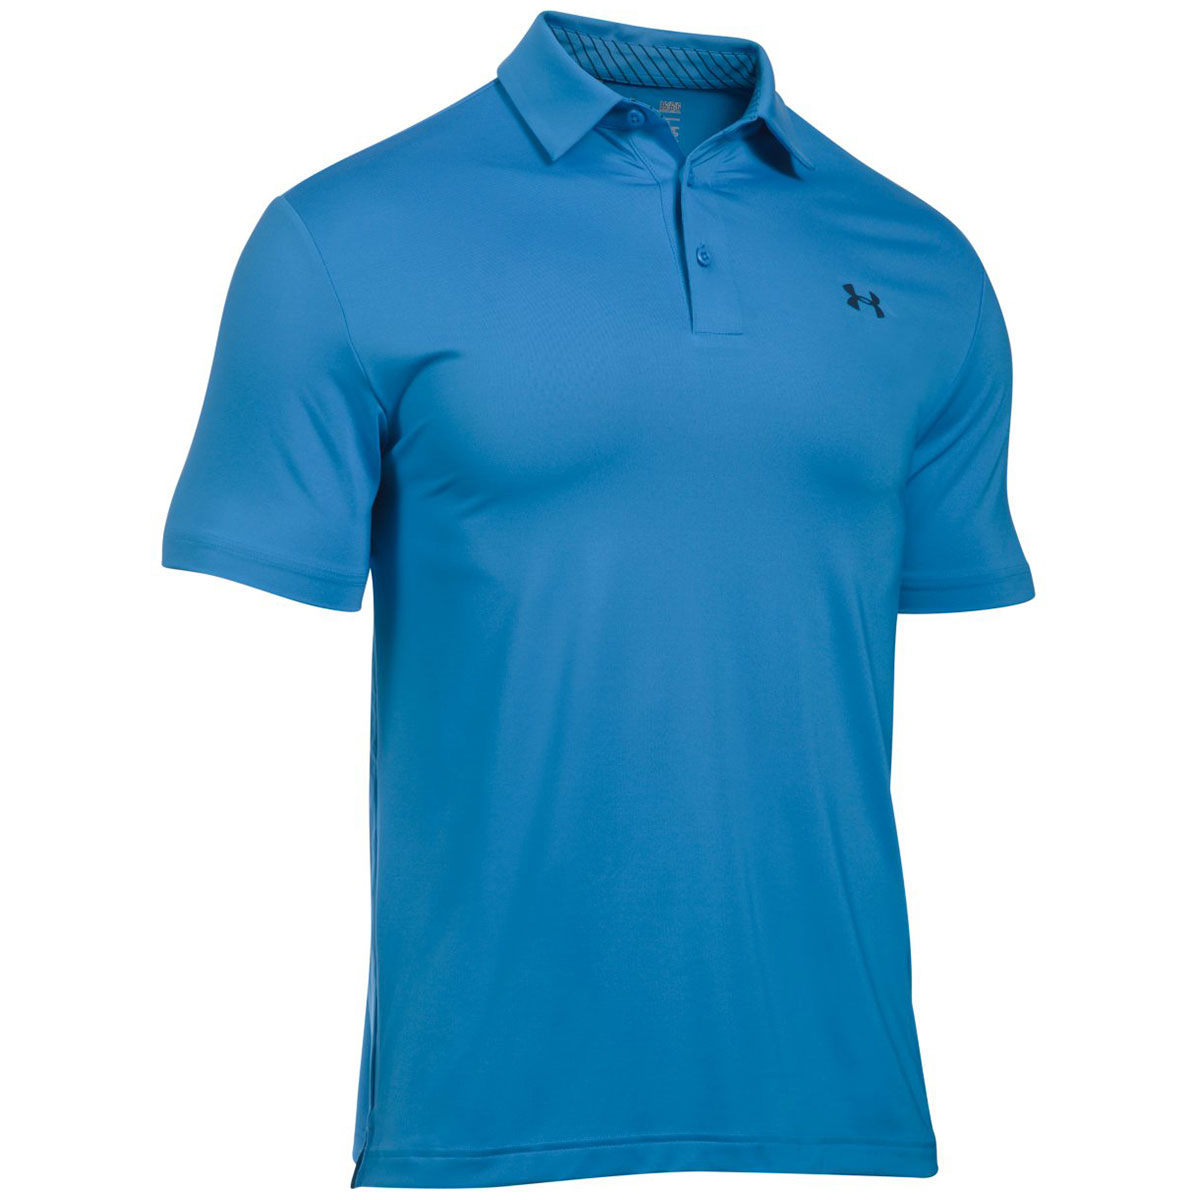 Under Armour Polo Playoff pour homme M Academy/Overcast Gray (428) dkyrt